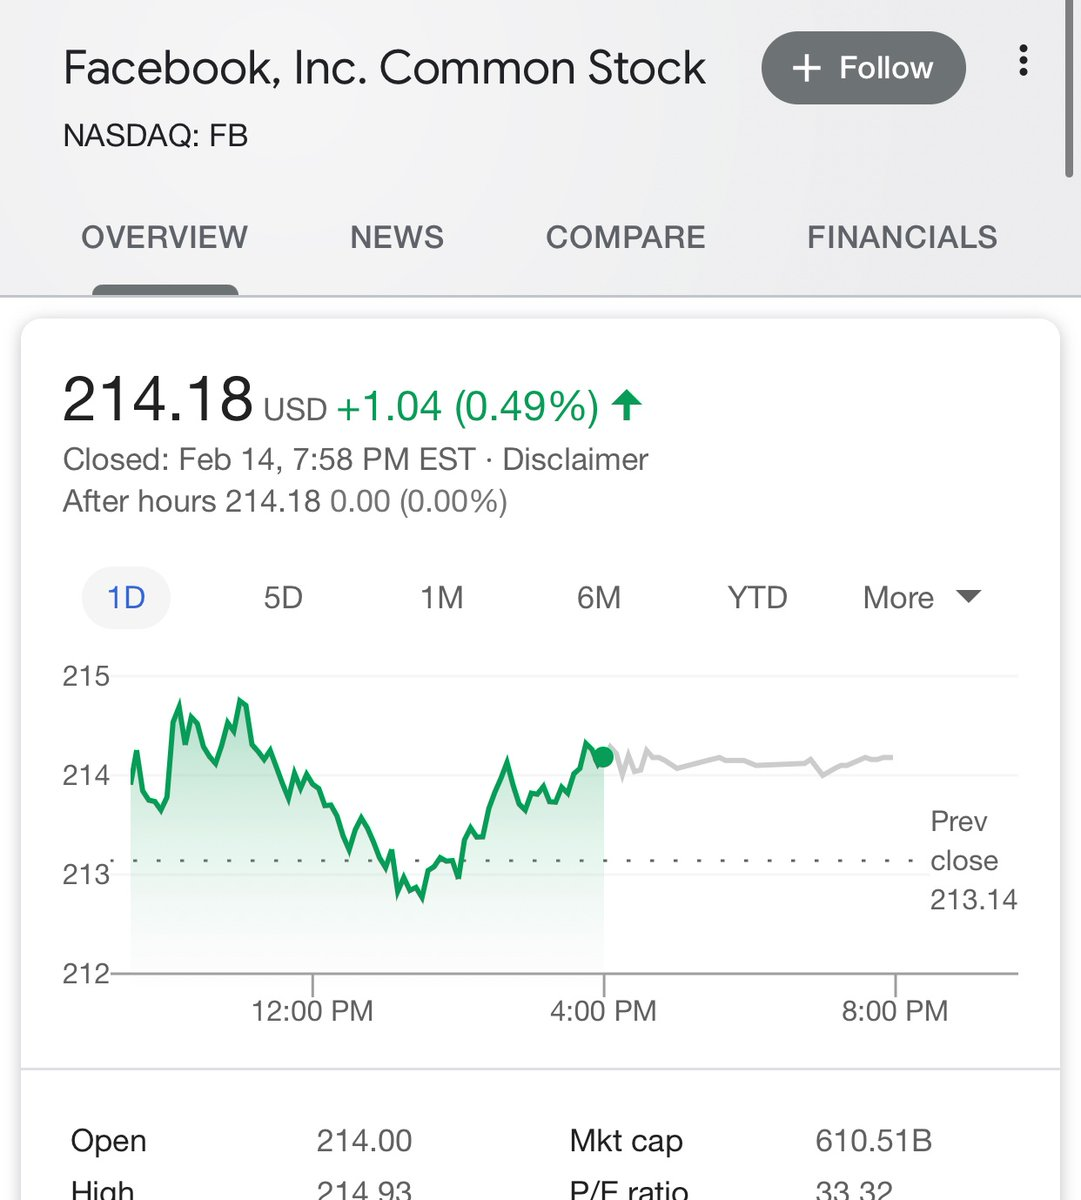 @pokimanelol Facebook $FB  It's going to be to our generation what tobacco companies were to boomers.  Similarly only risk is regulatory, which is partly offset by the potential for regulatory capture.  Zuck has a long runway, will probably whitewash his image as @BillGates has